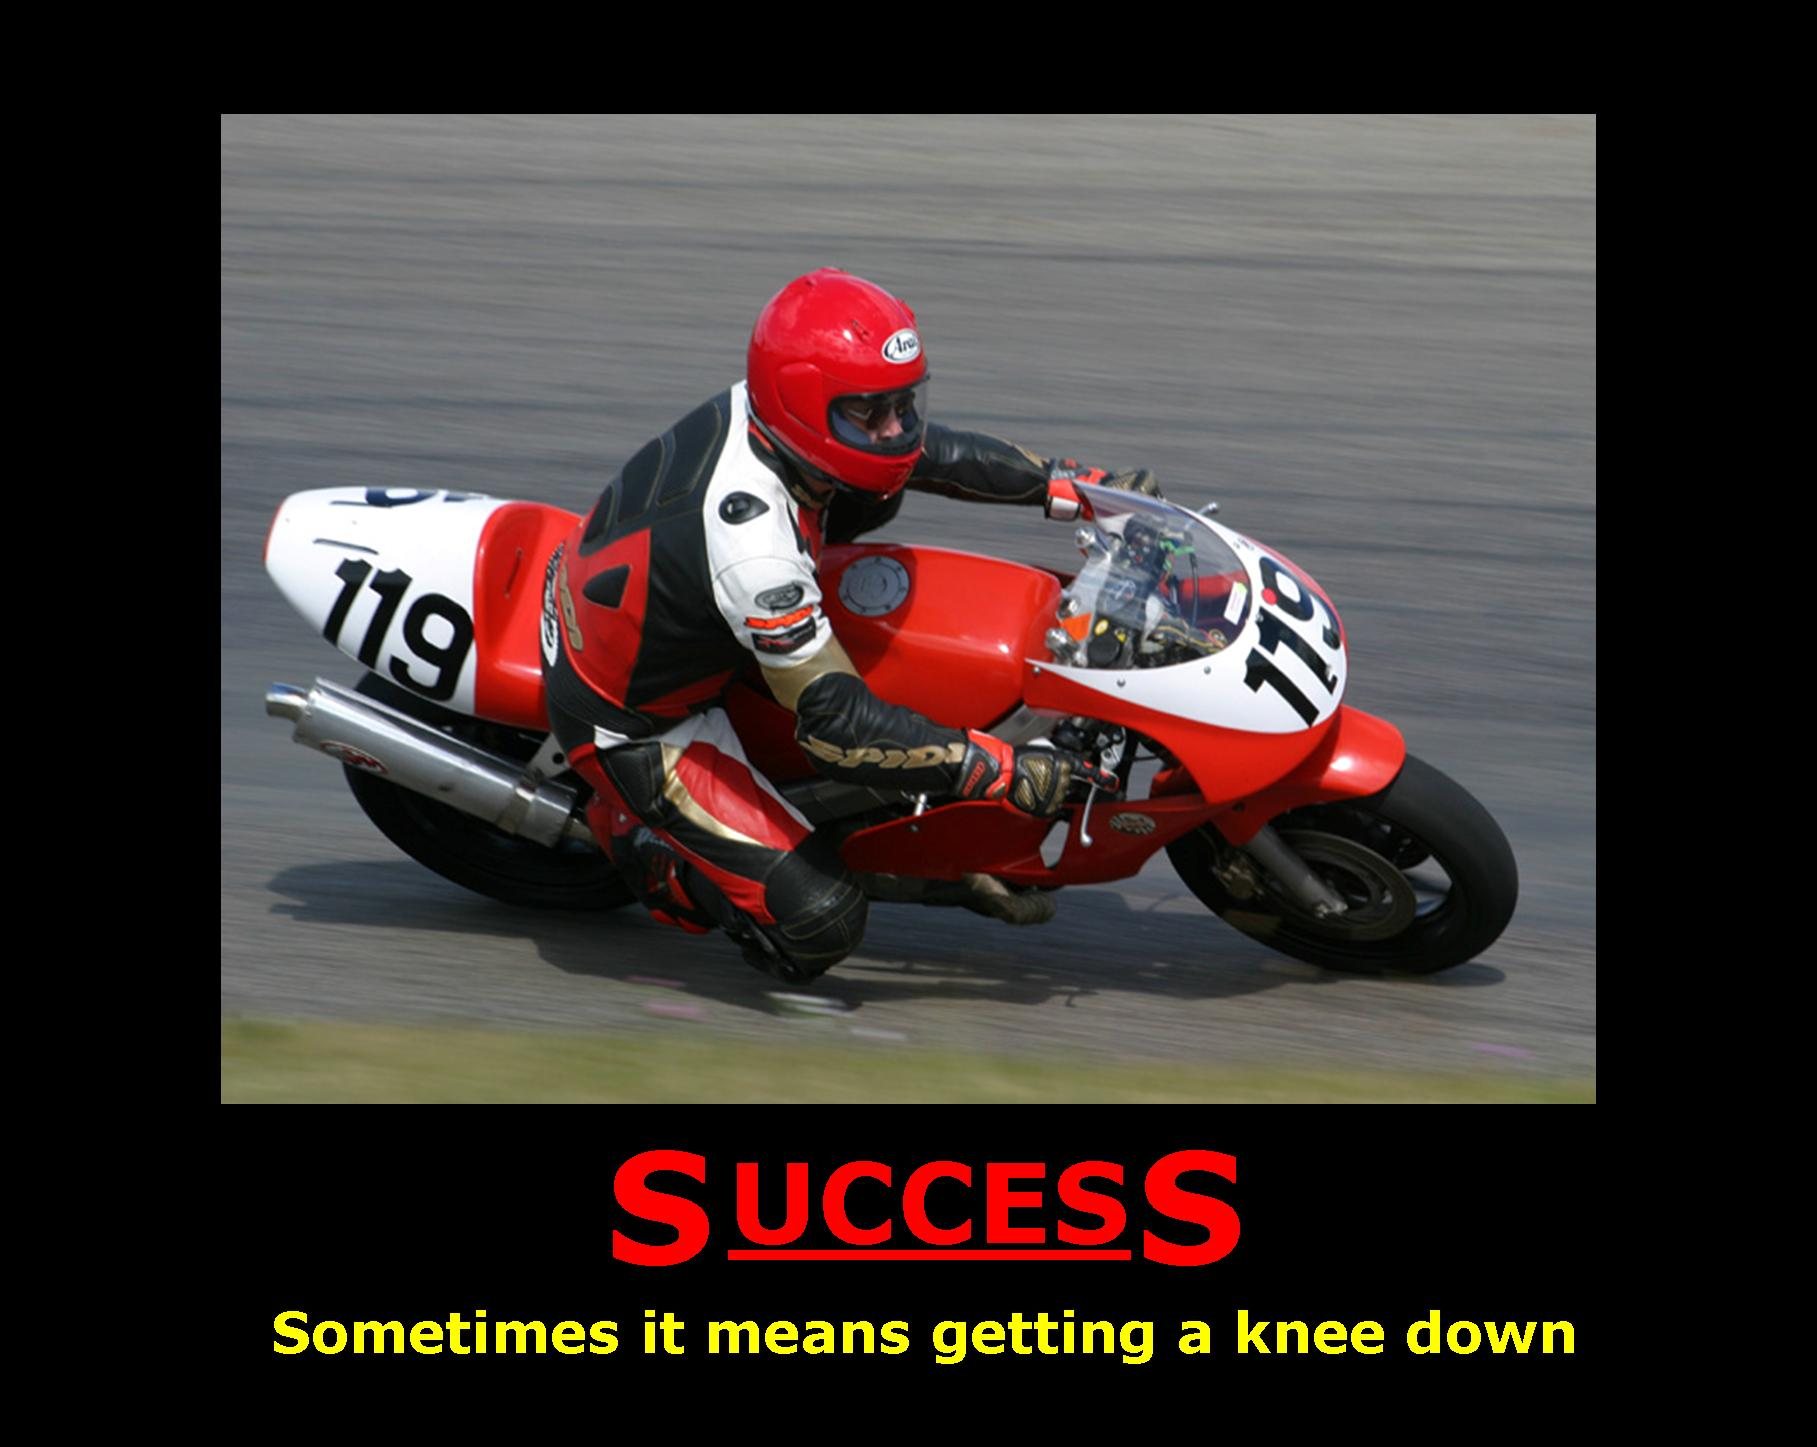 Click image for larger version  Name:success.jpg Views:36 Size:167.9 KB ID:23027